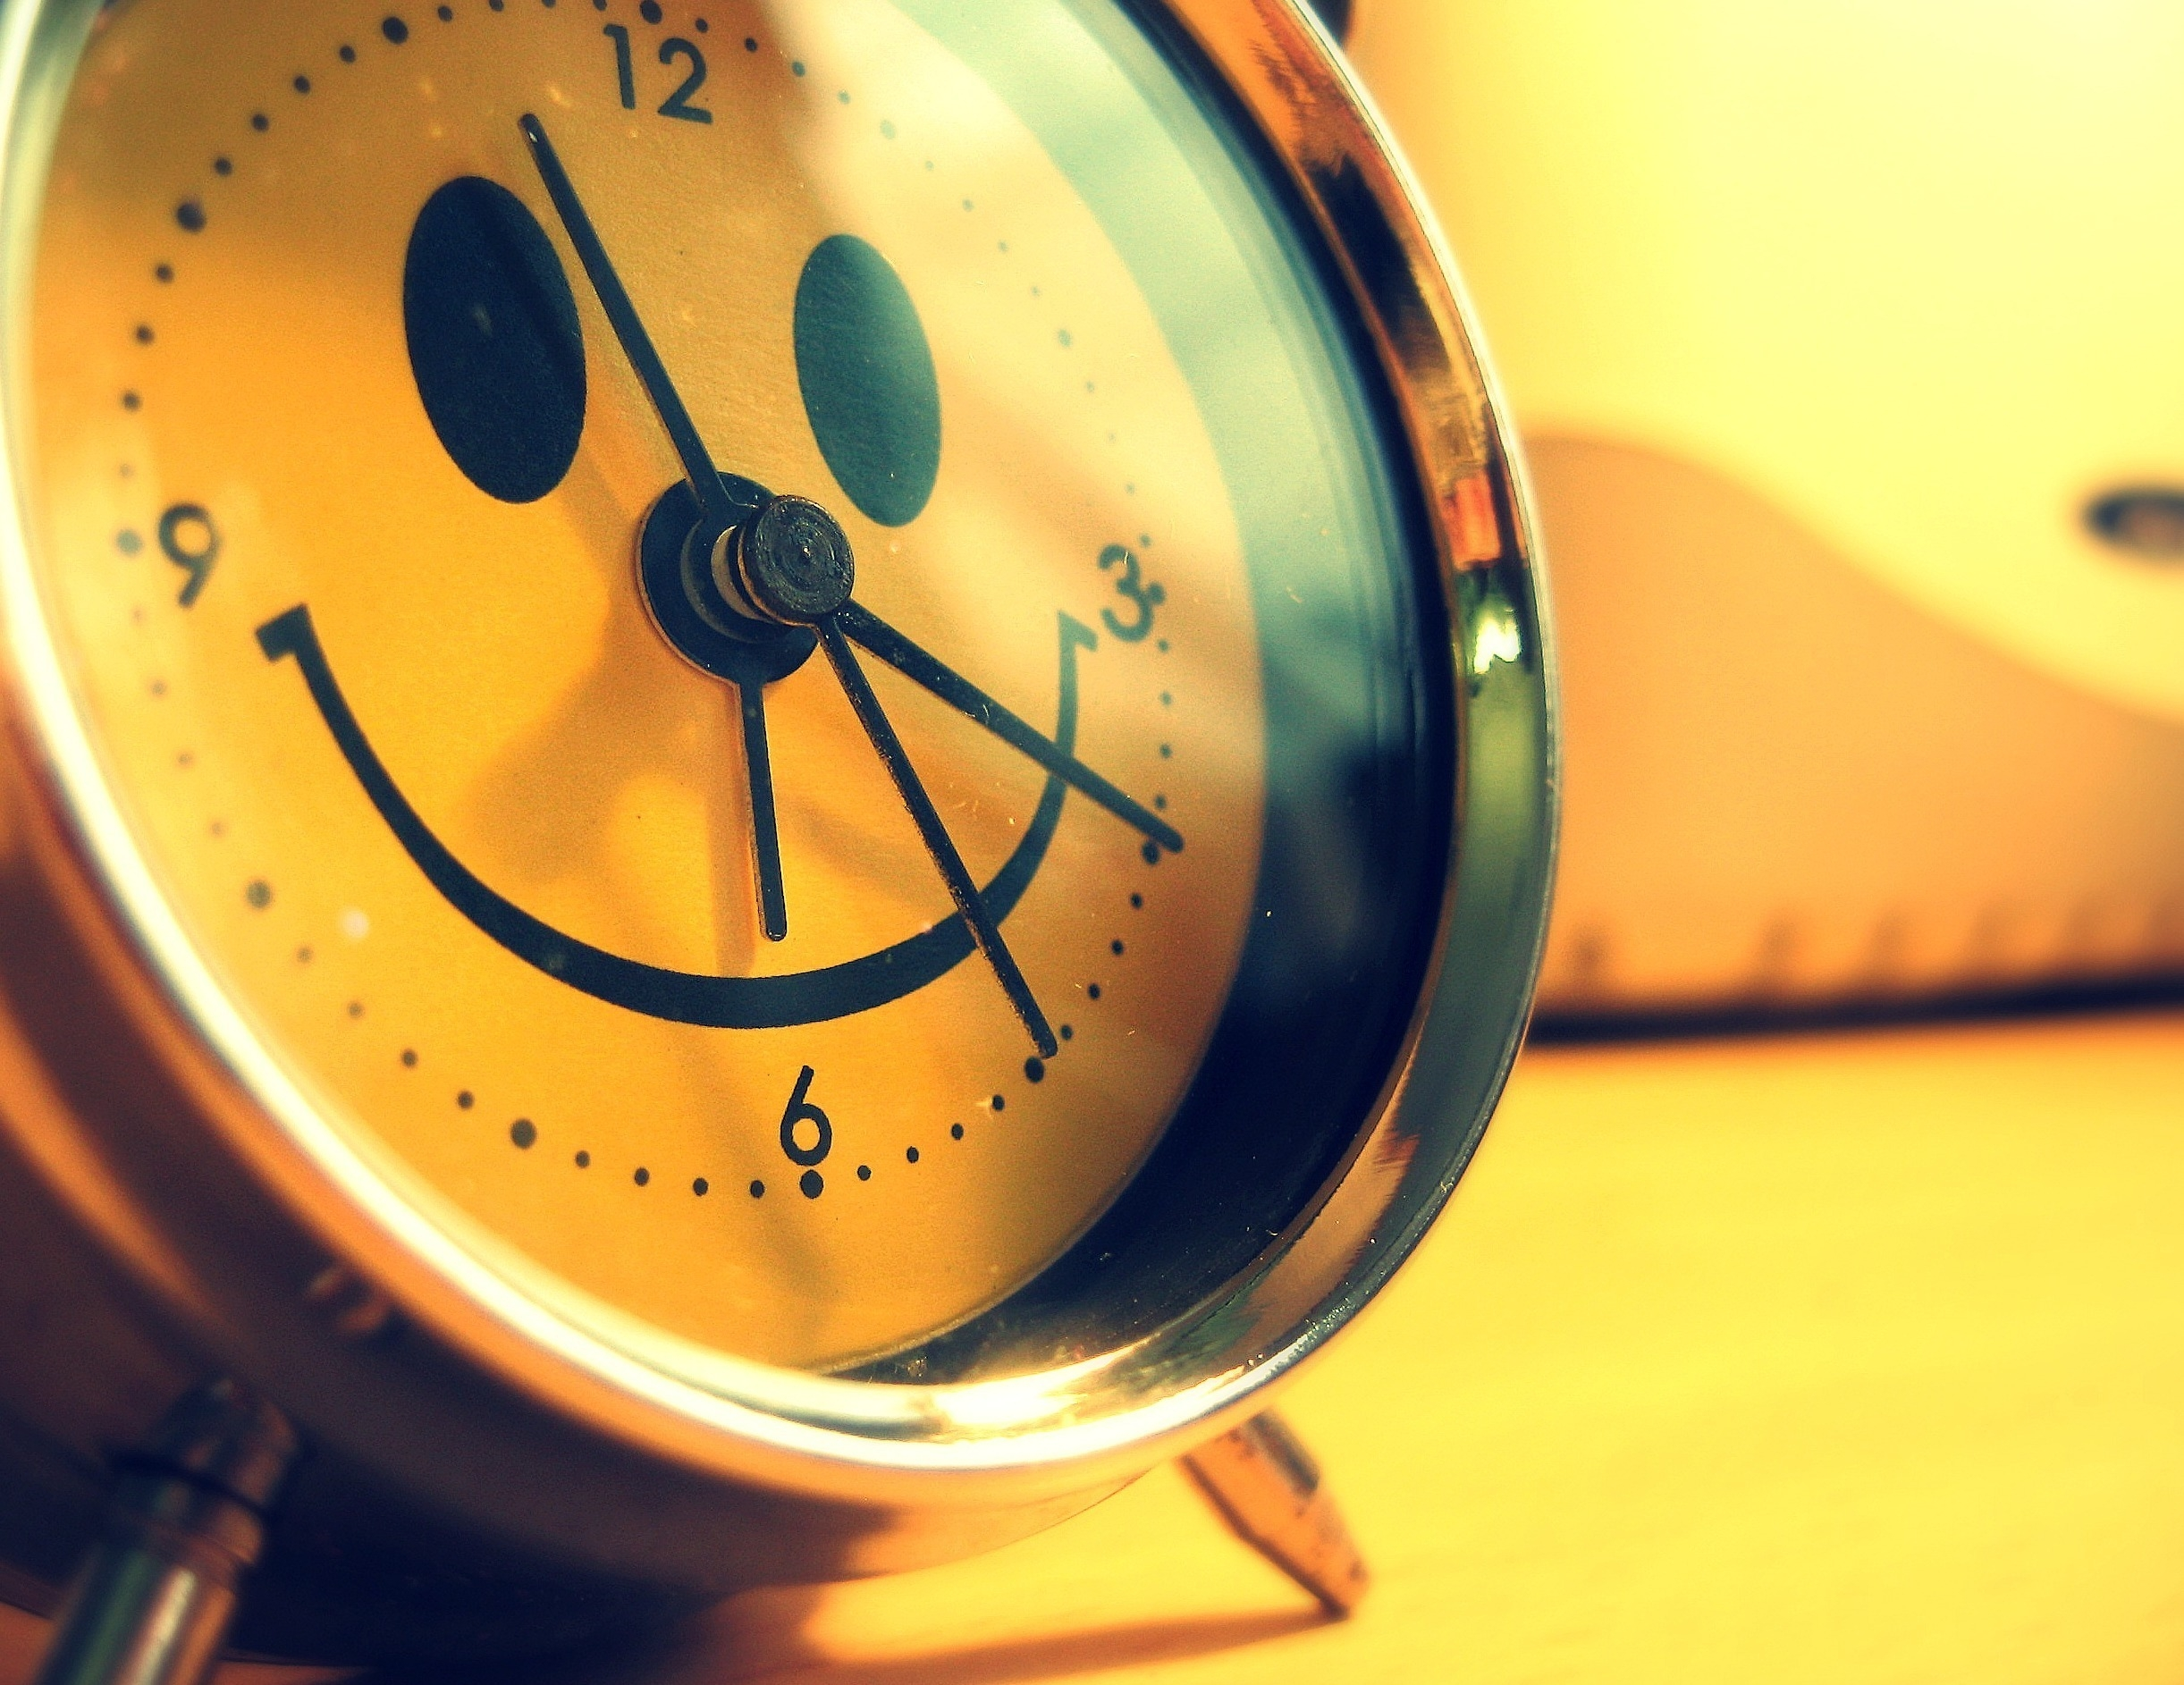 55152 download wallpaper Miscellanea, Miscellaneous, Alarm Clock, Smile, Cool, Creative screensavers and pictures for free